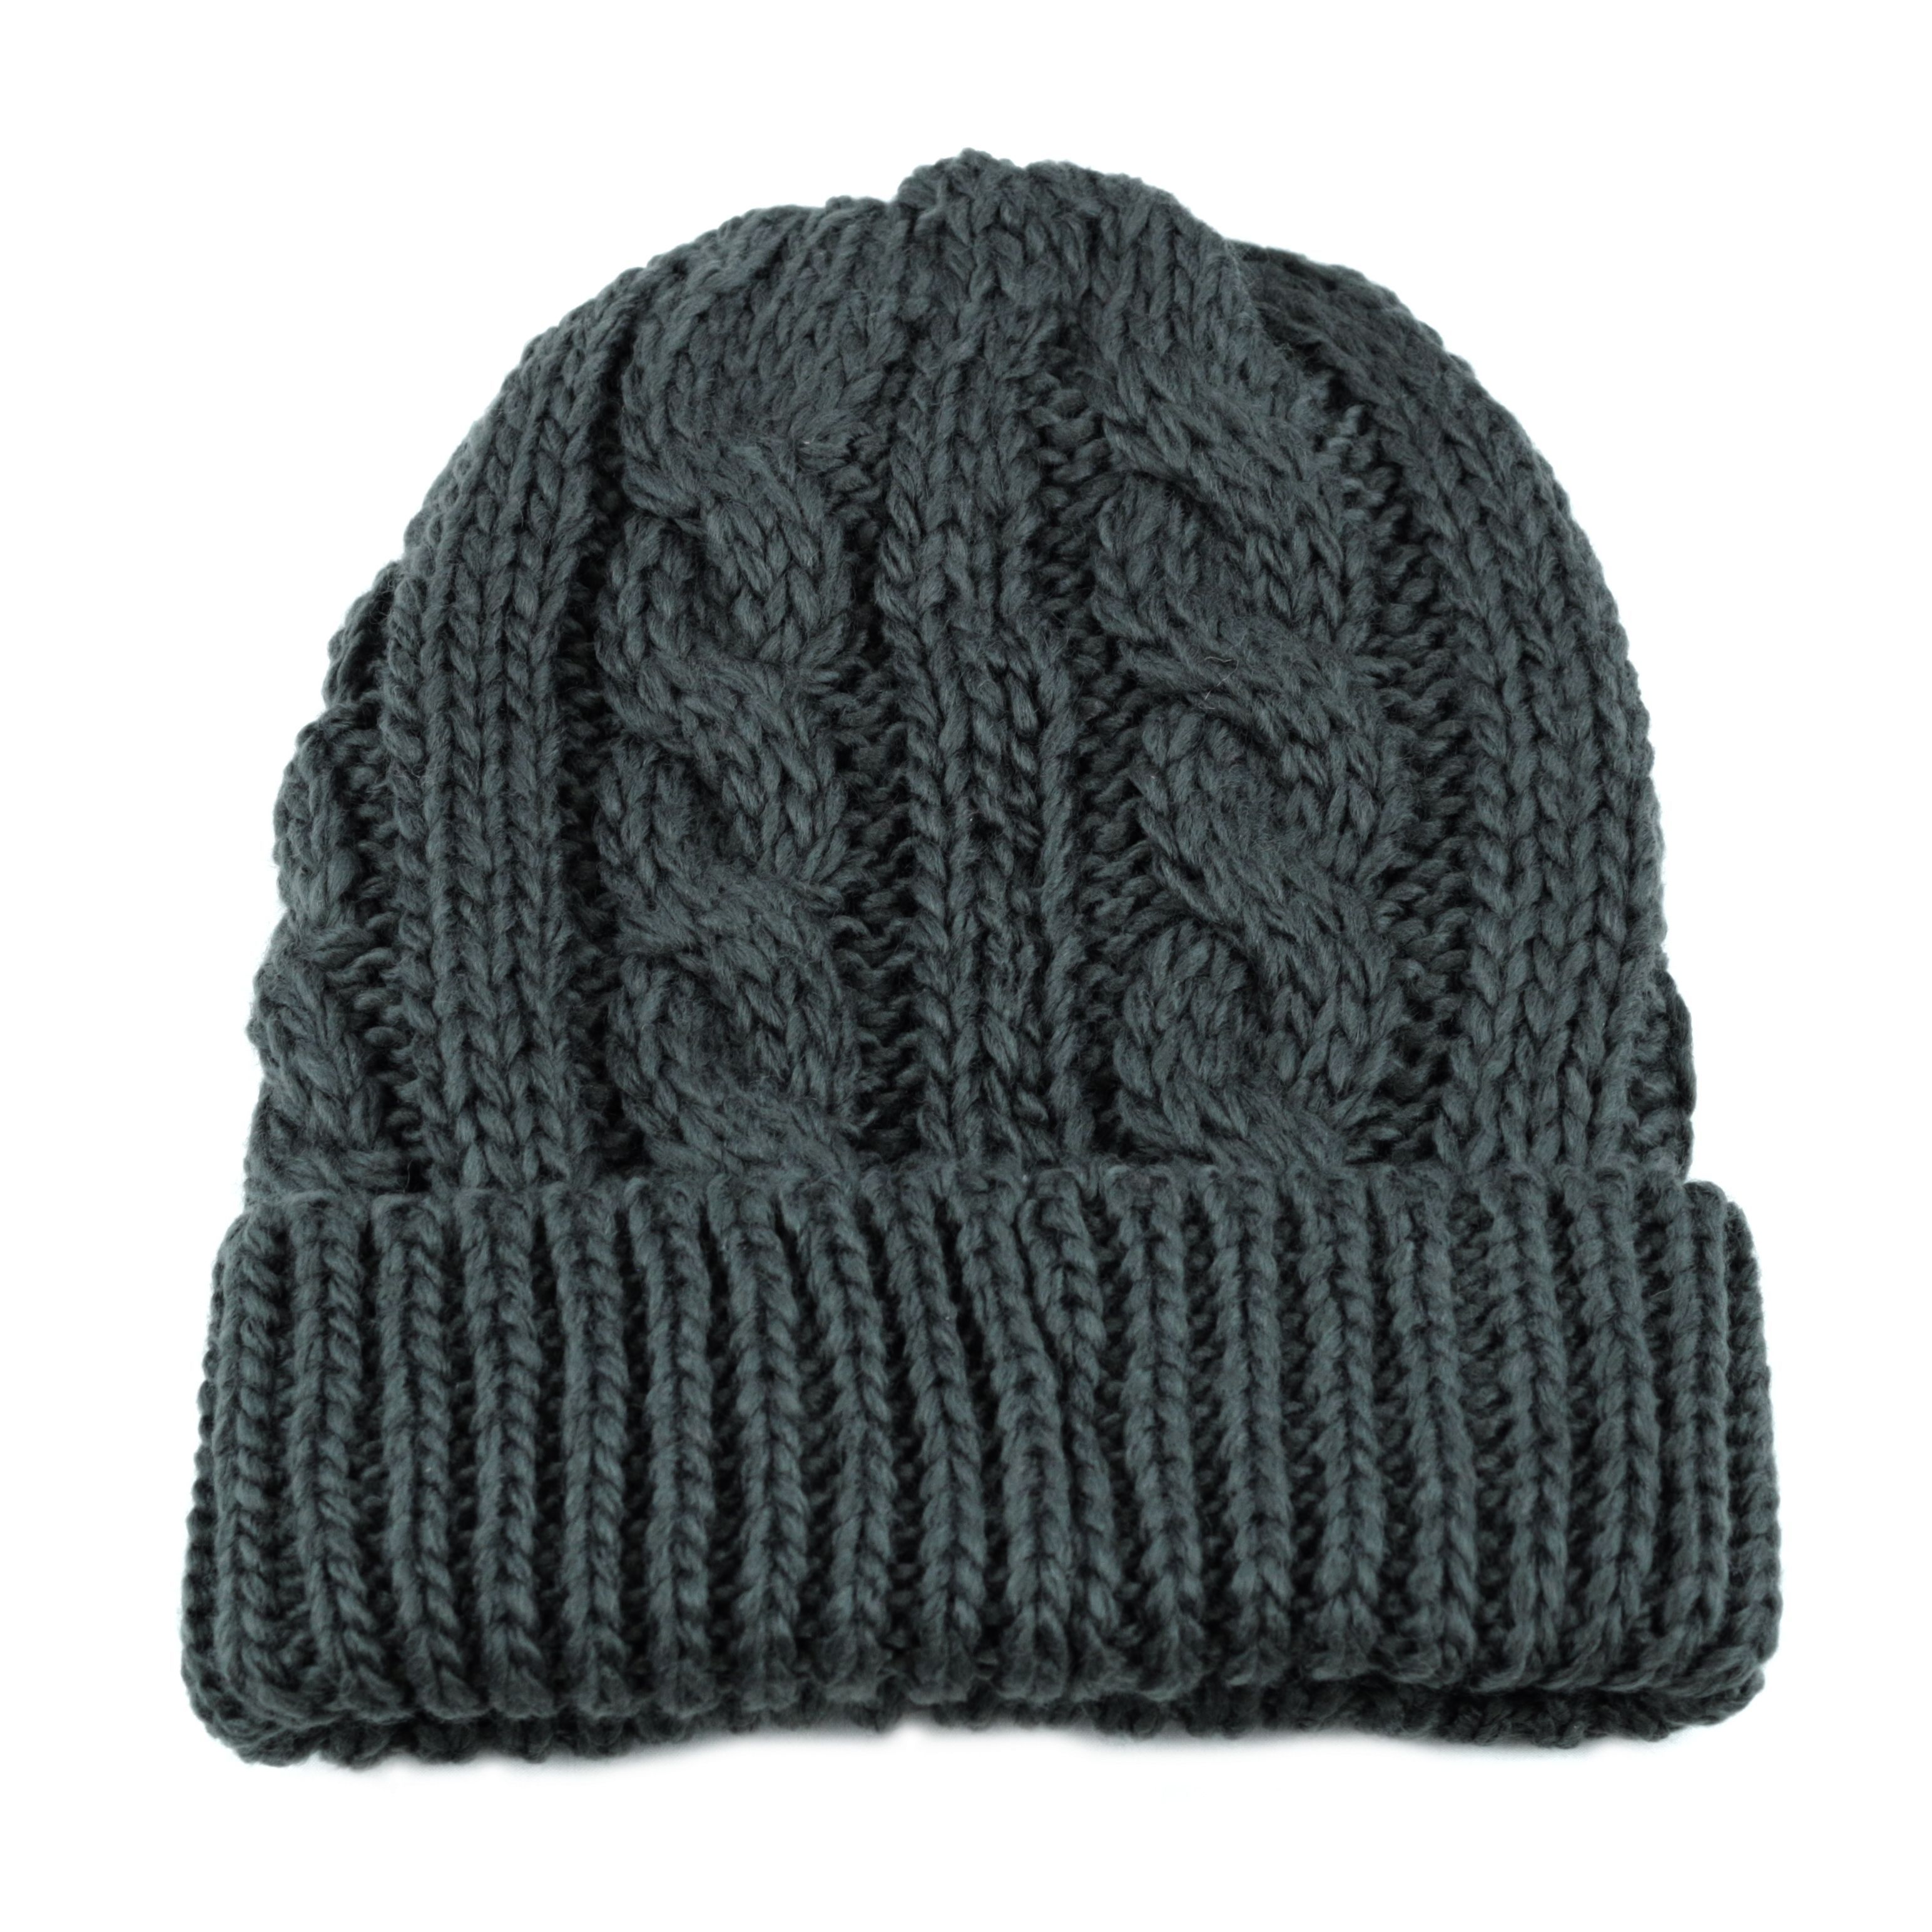 Knit Beanie with Fleece Lining Hat